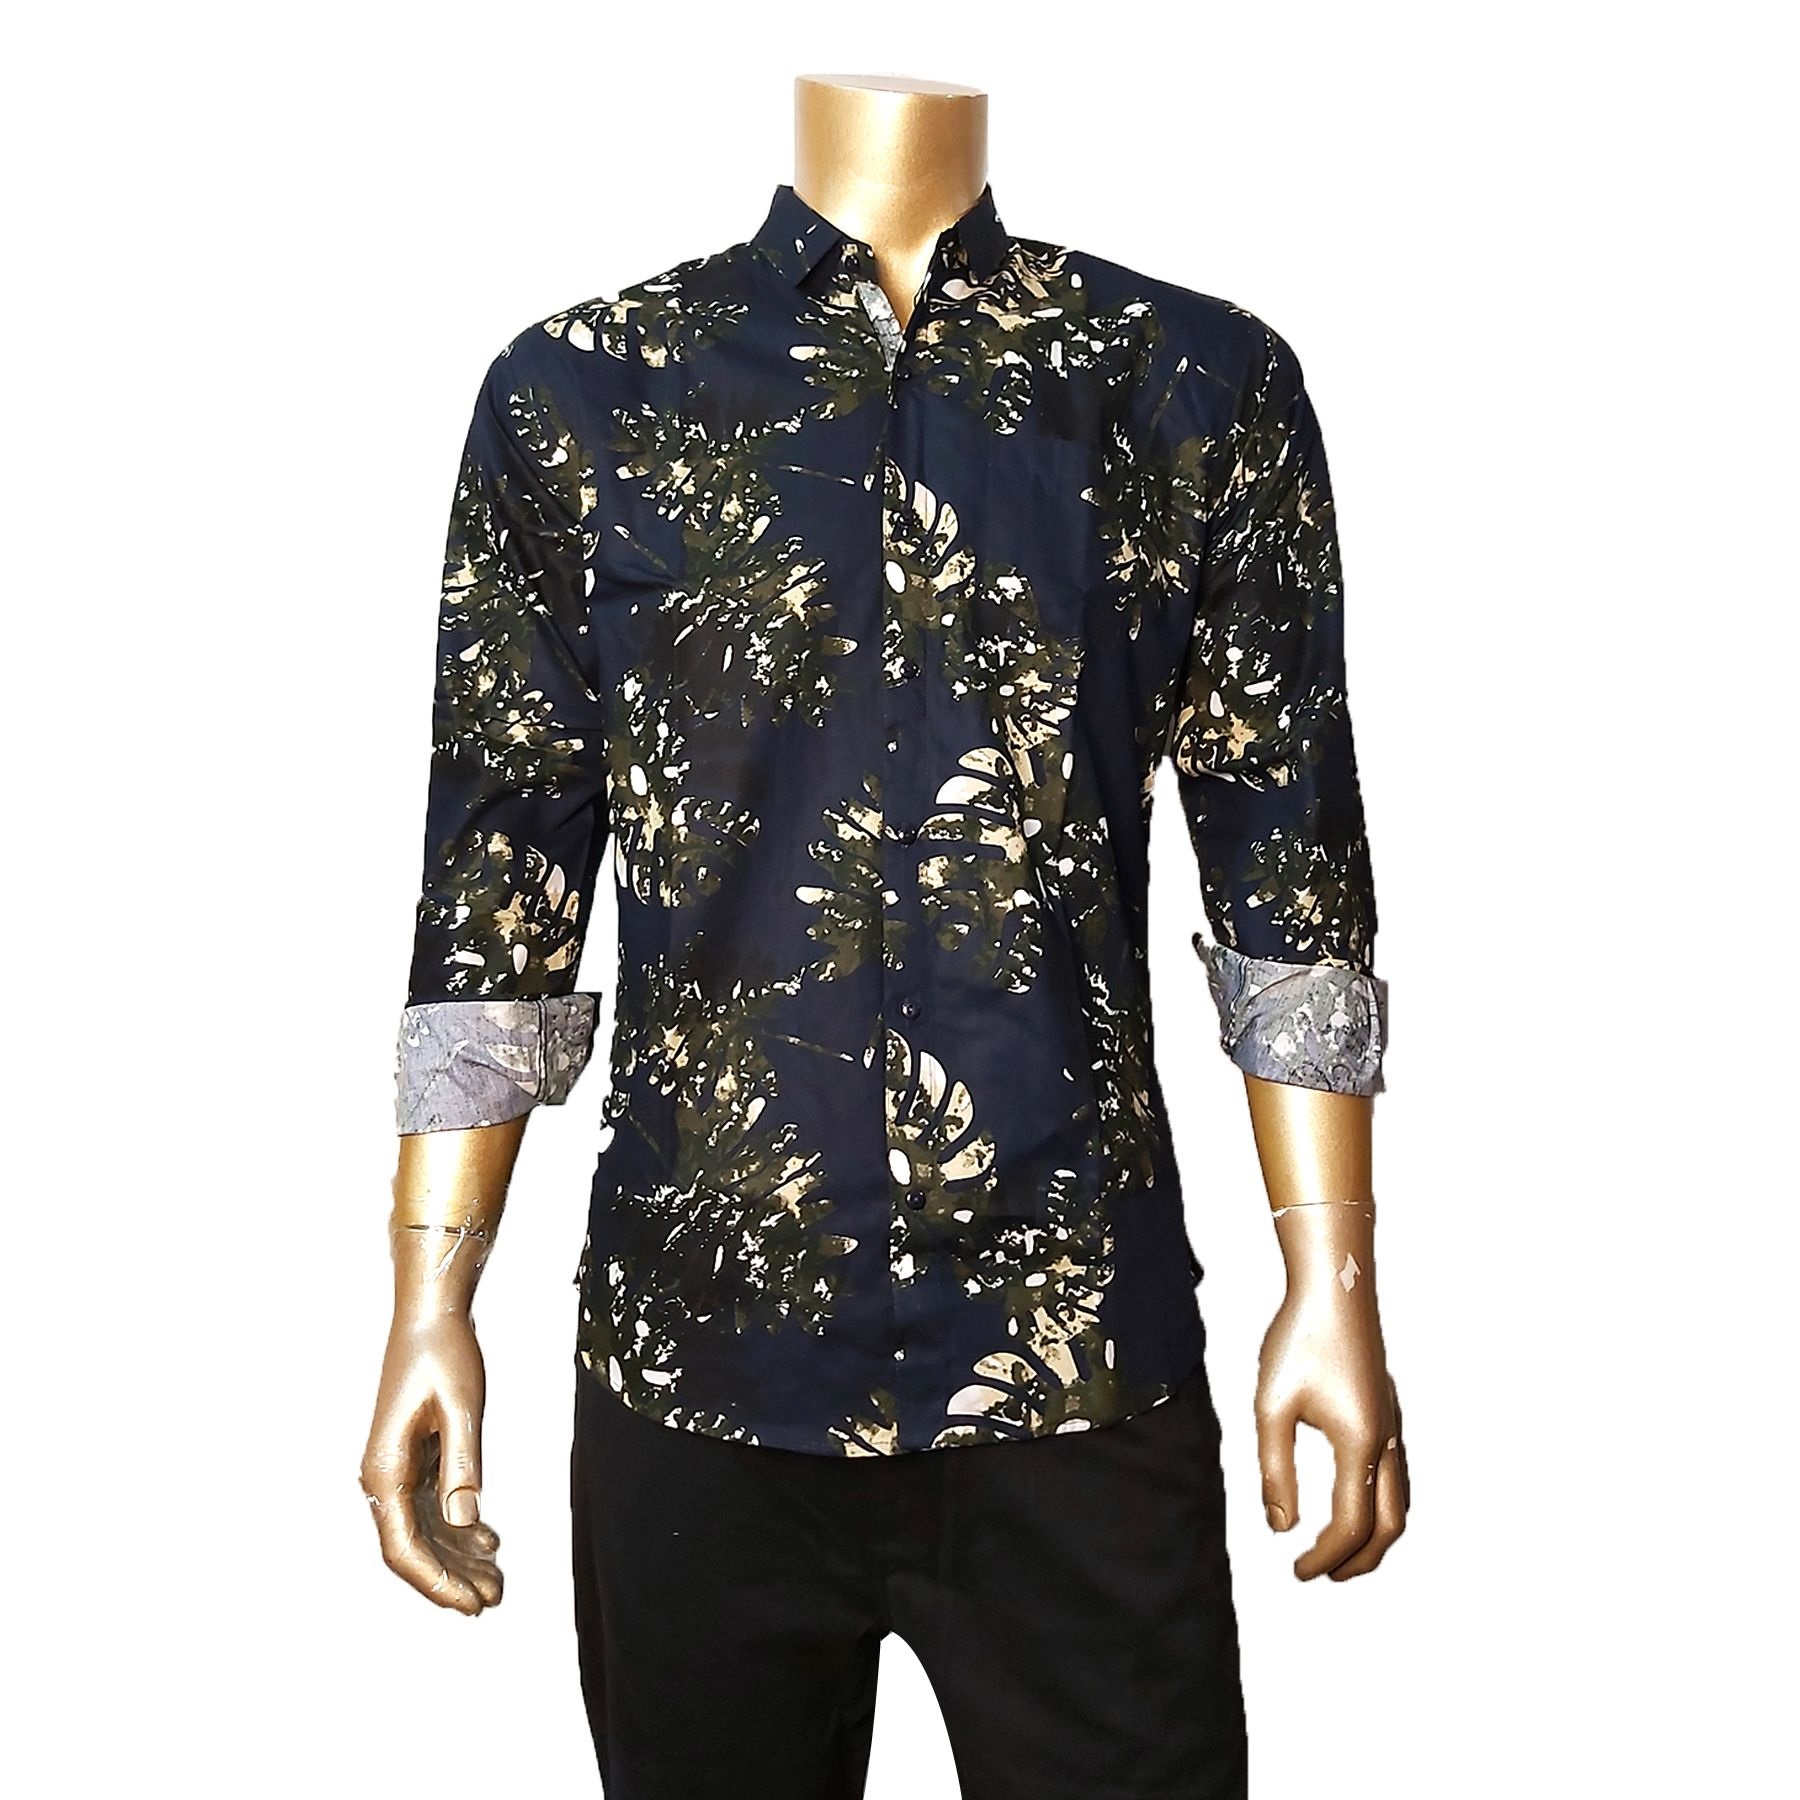 Men's Trendy Cotton Casual Style Shirt